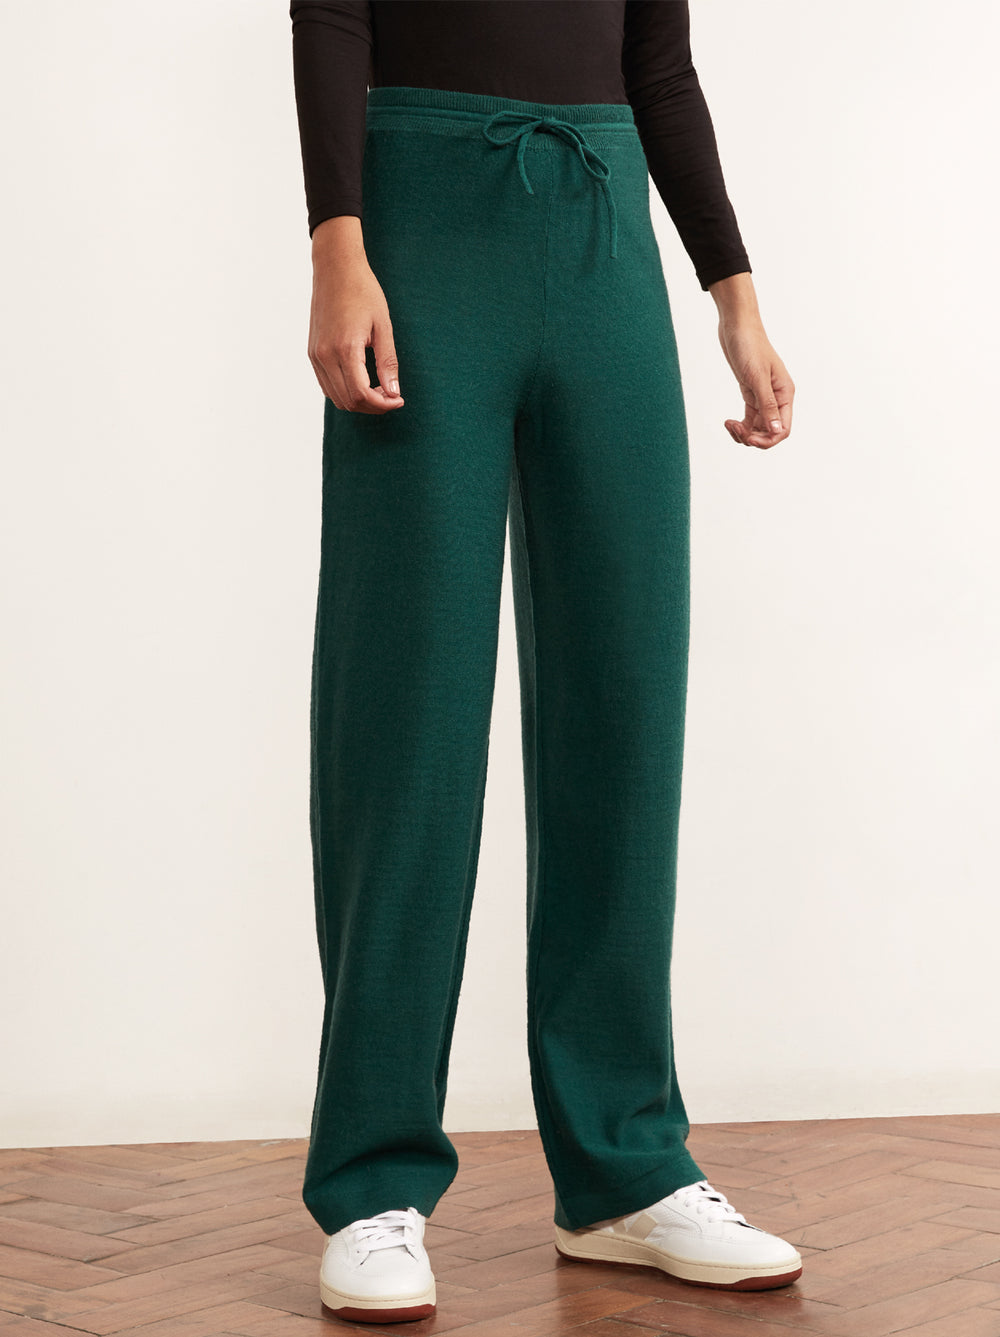 Matilda Green Merino Trousers by KITRI Studio